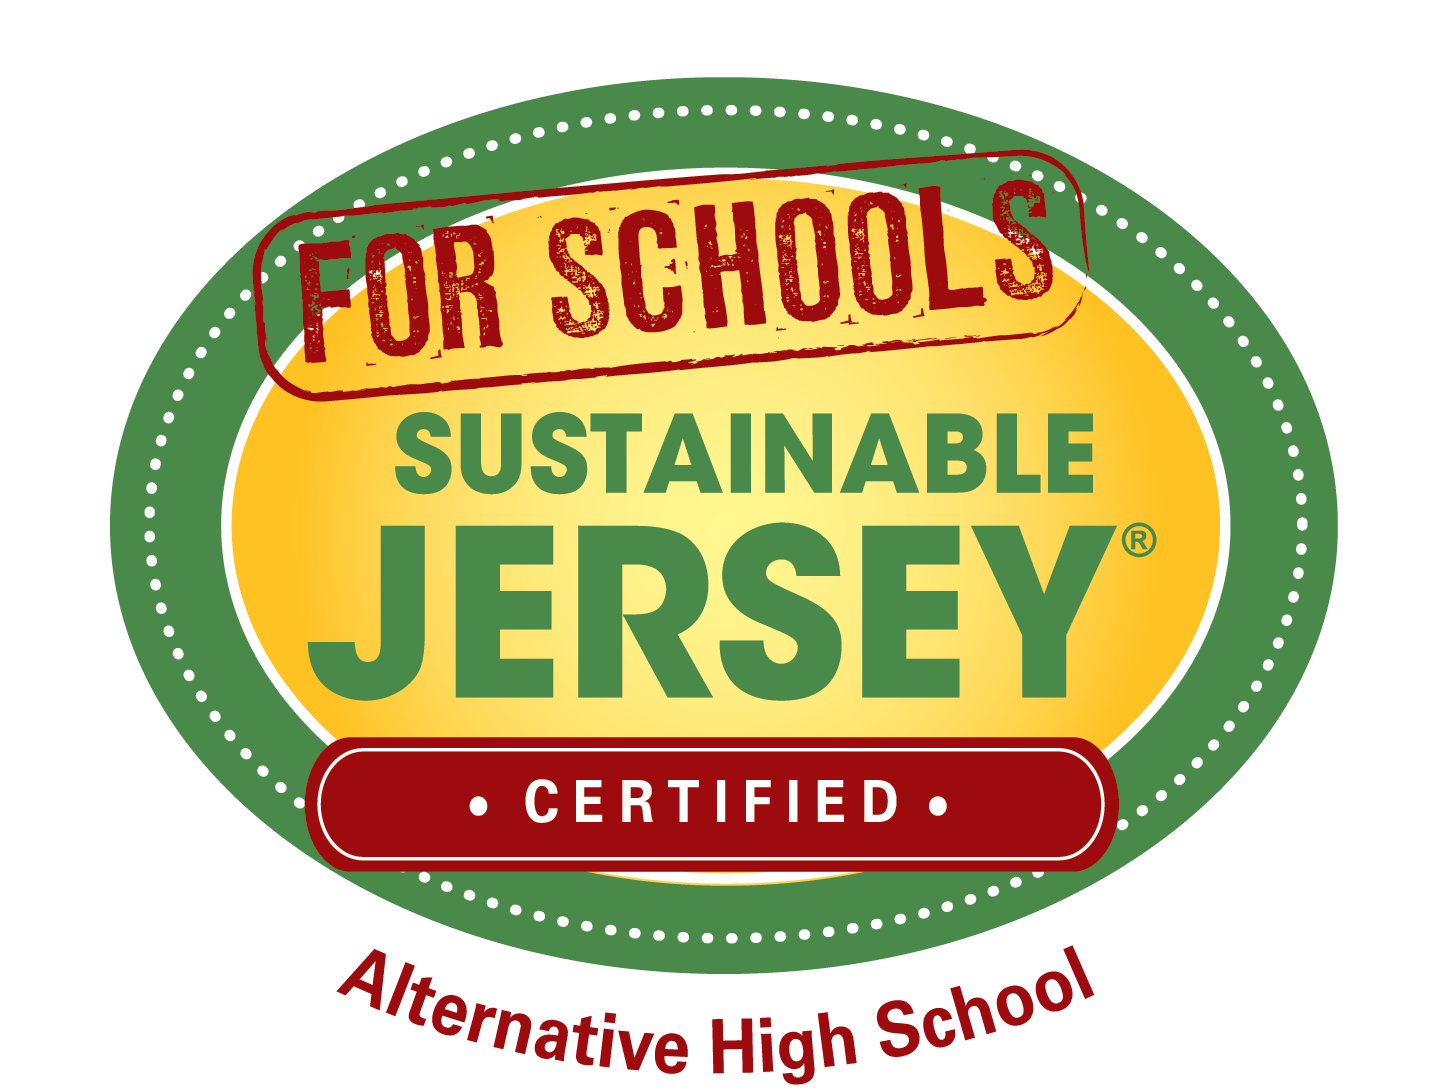 For Schools Sustainable Jersey Certified